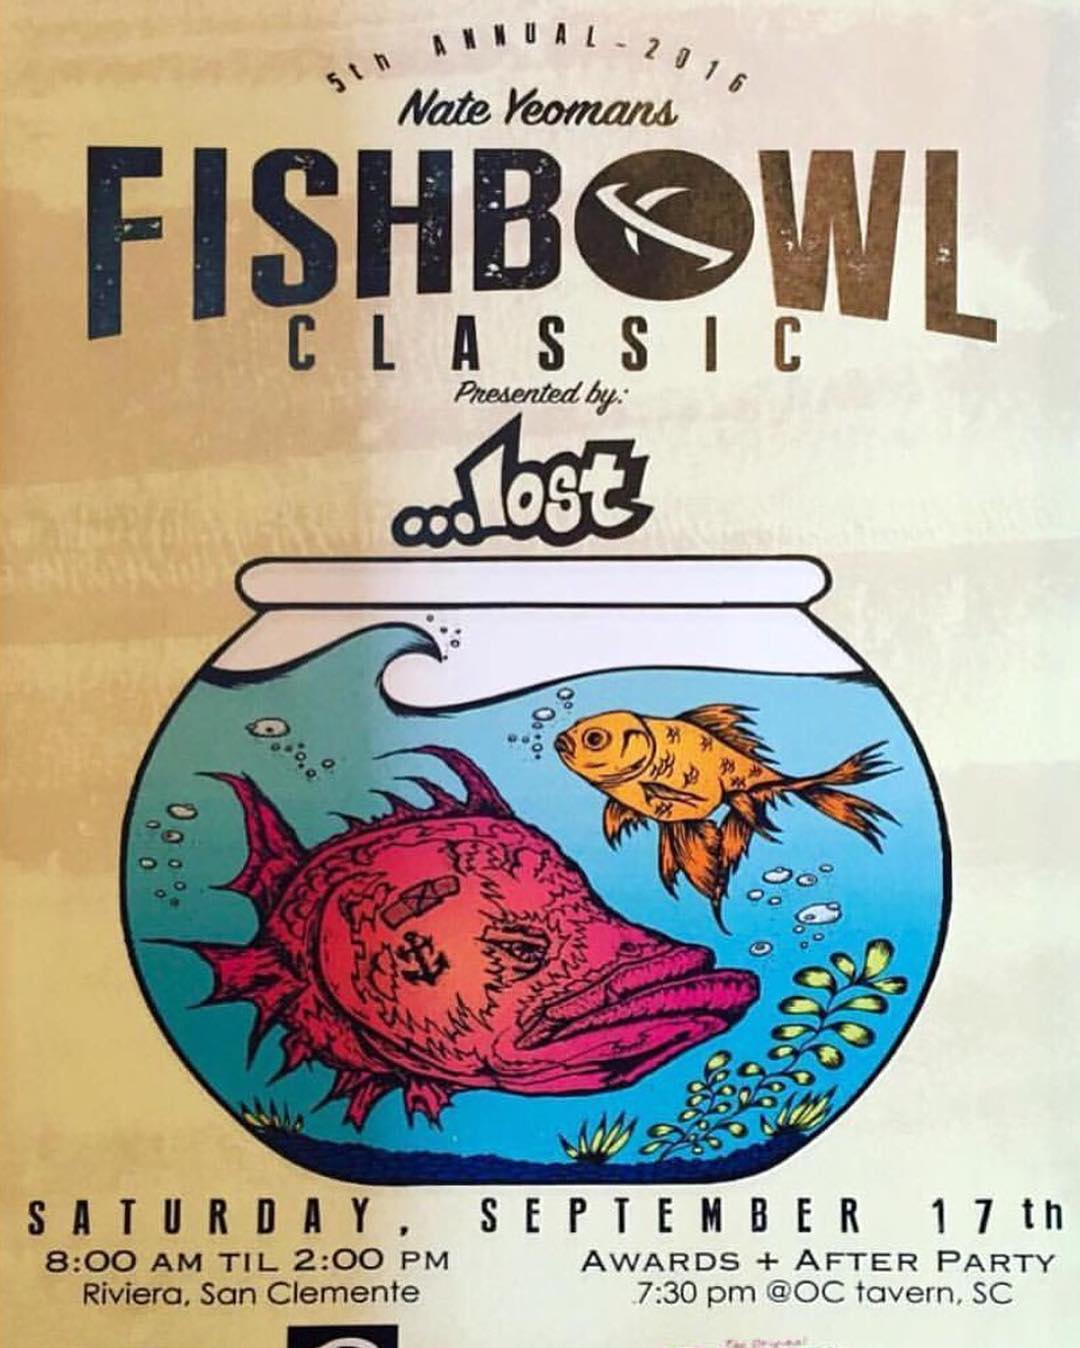 Don't miss the 5th annual @bigdeluxe_  Fishbowl Classic next Saturday September 17th at Rivieria followed by an after party at @oc_tavern at 7pm with @tunnelvisionsc @_afterschoolspecial_ and many more bands!